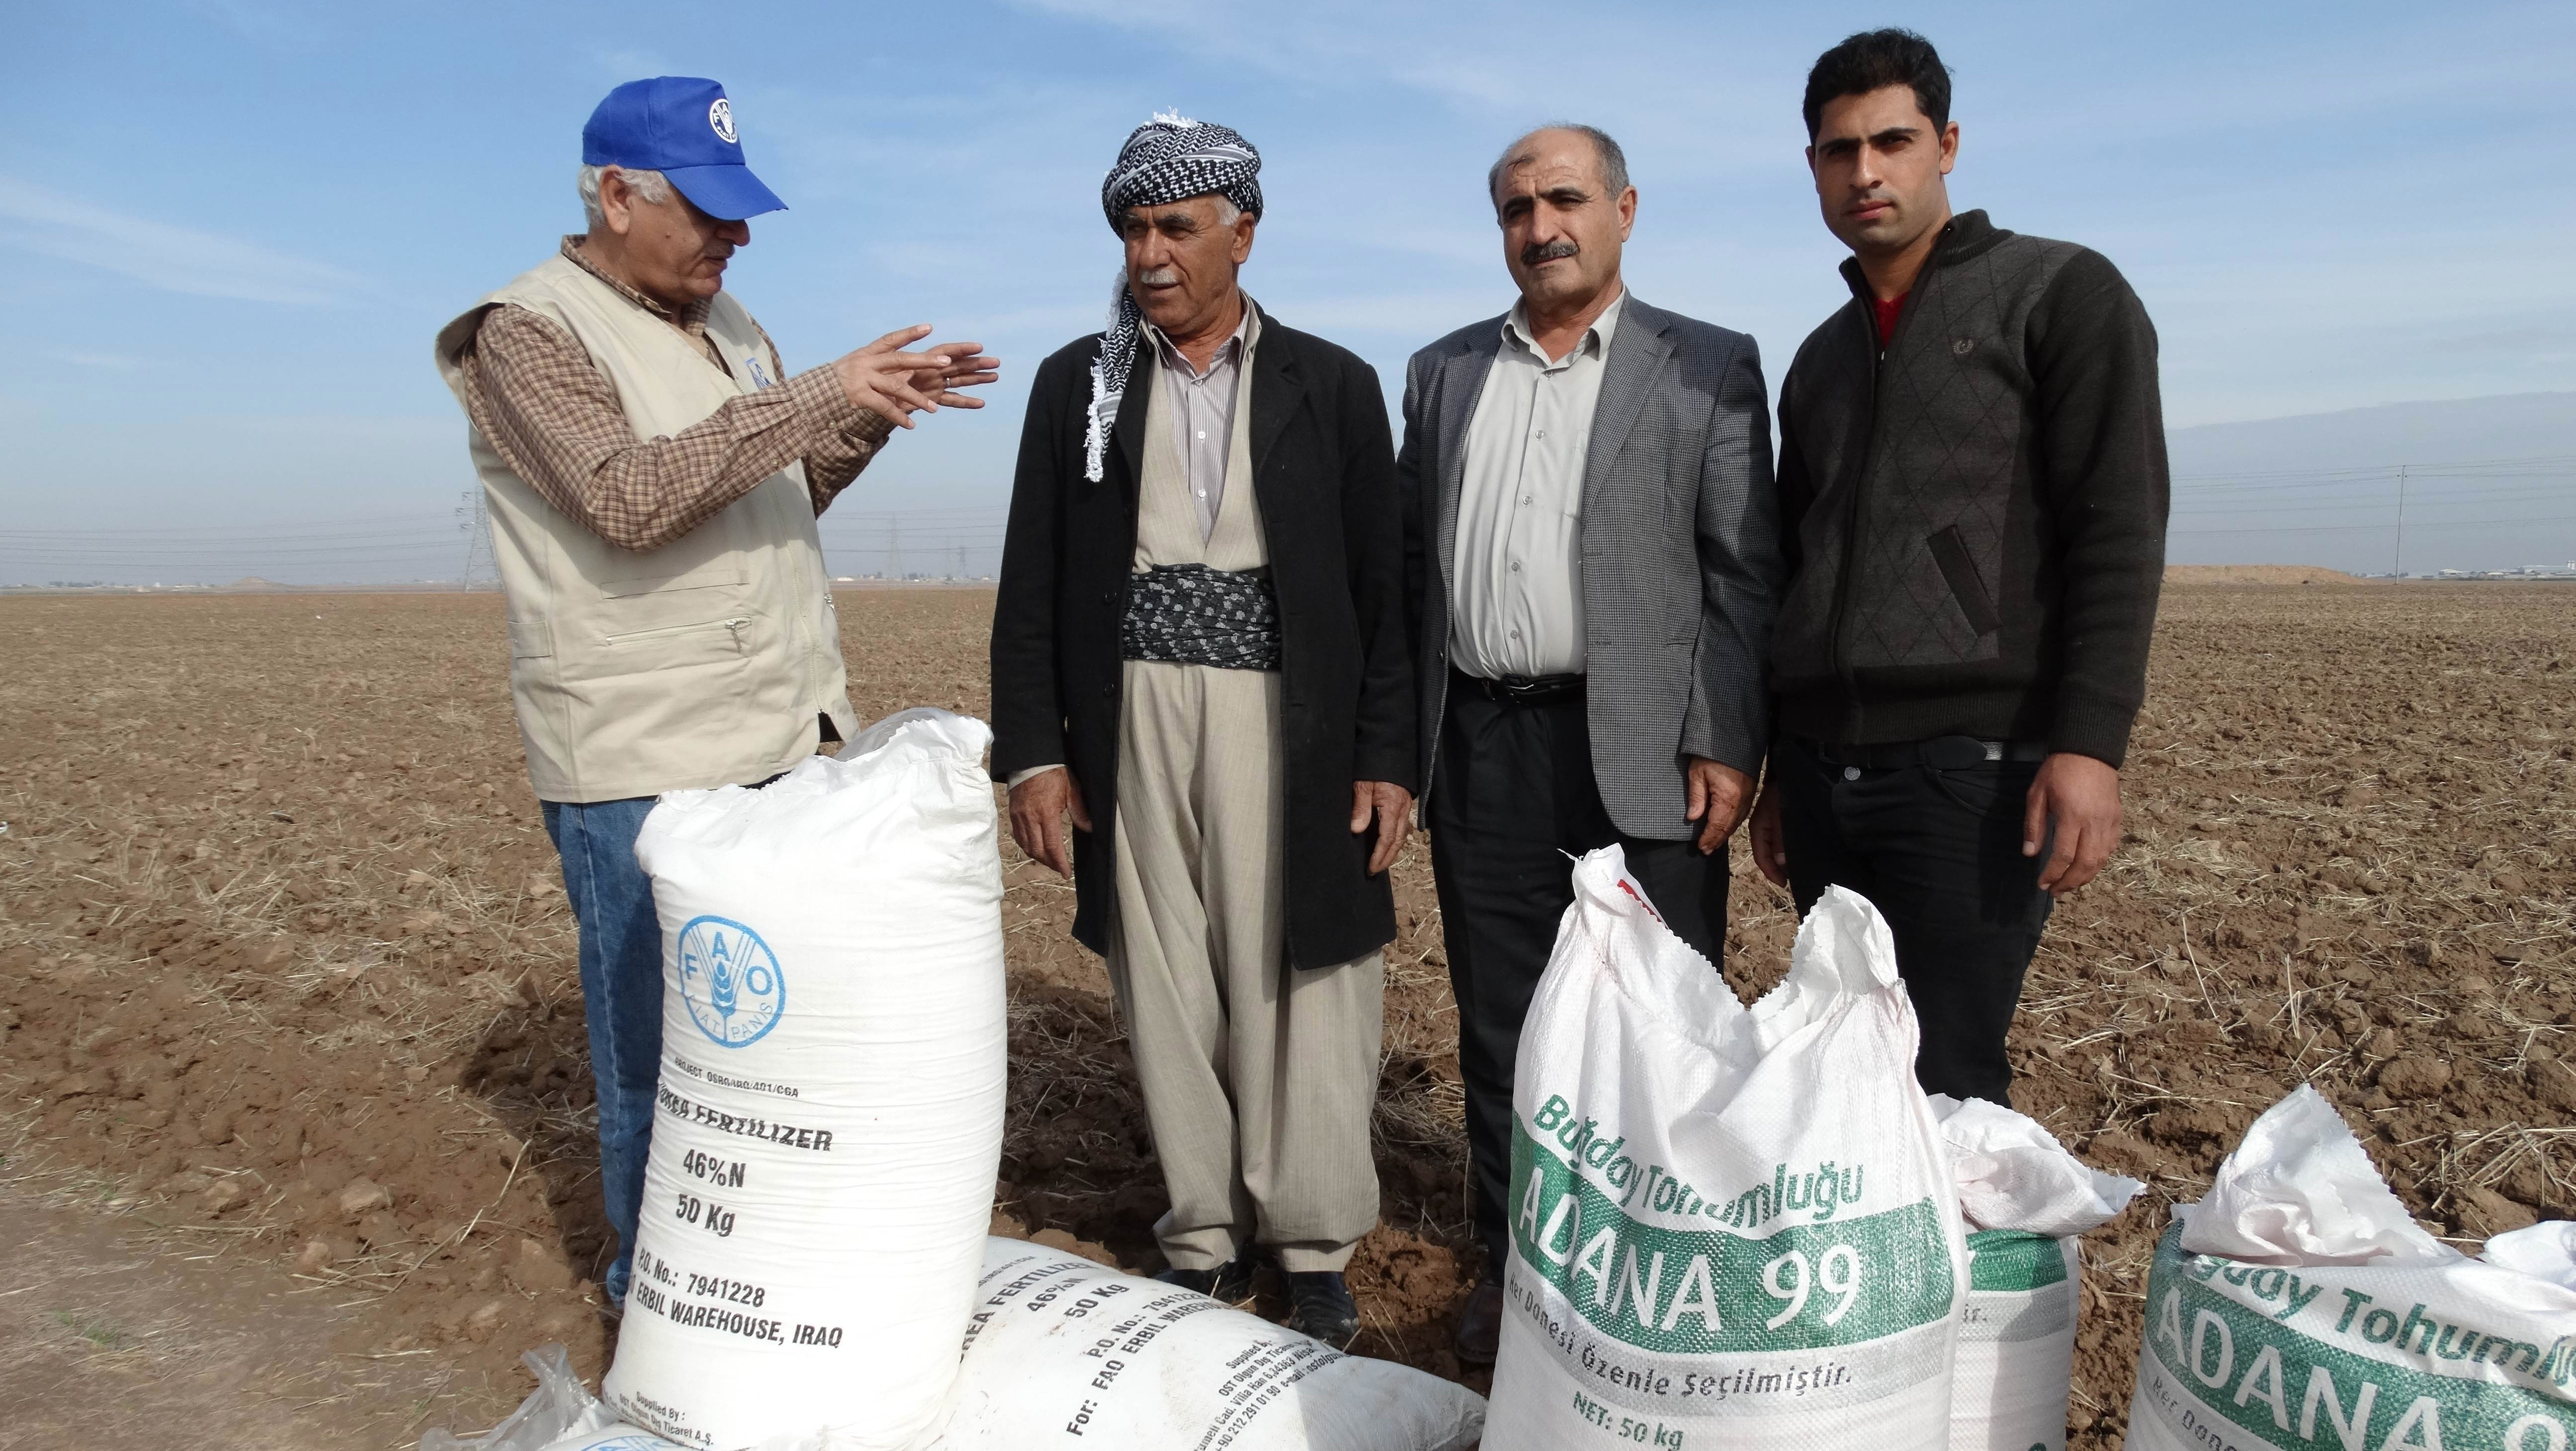 FAO distributing seed and fertilizer to farmers in Iraqi Kurdistan who have been affected by the advance of ISIS. Picture taken November 2014 in Erbil Province.